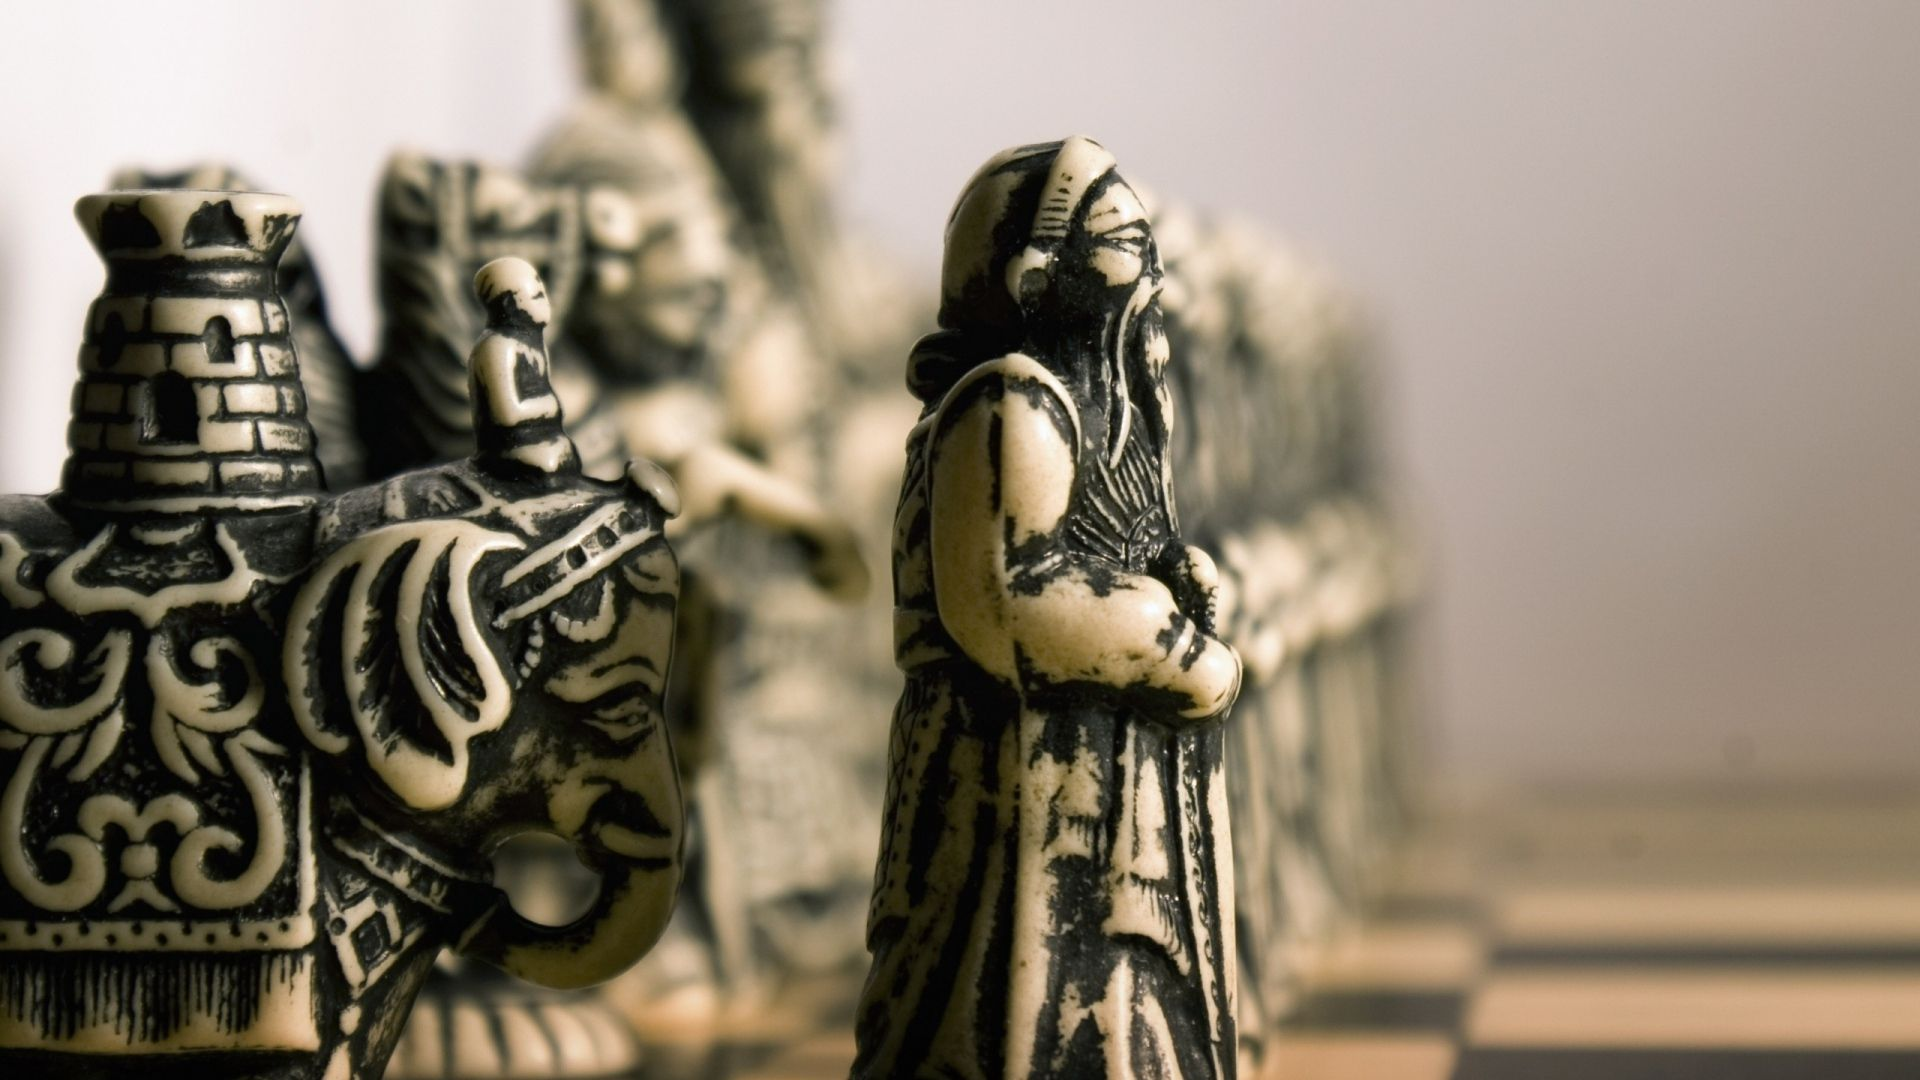 chess, figures, board - http://www.wallpapers4u.org/chess-figures-board/